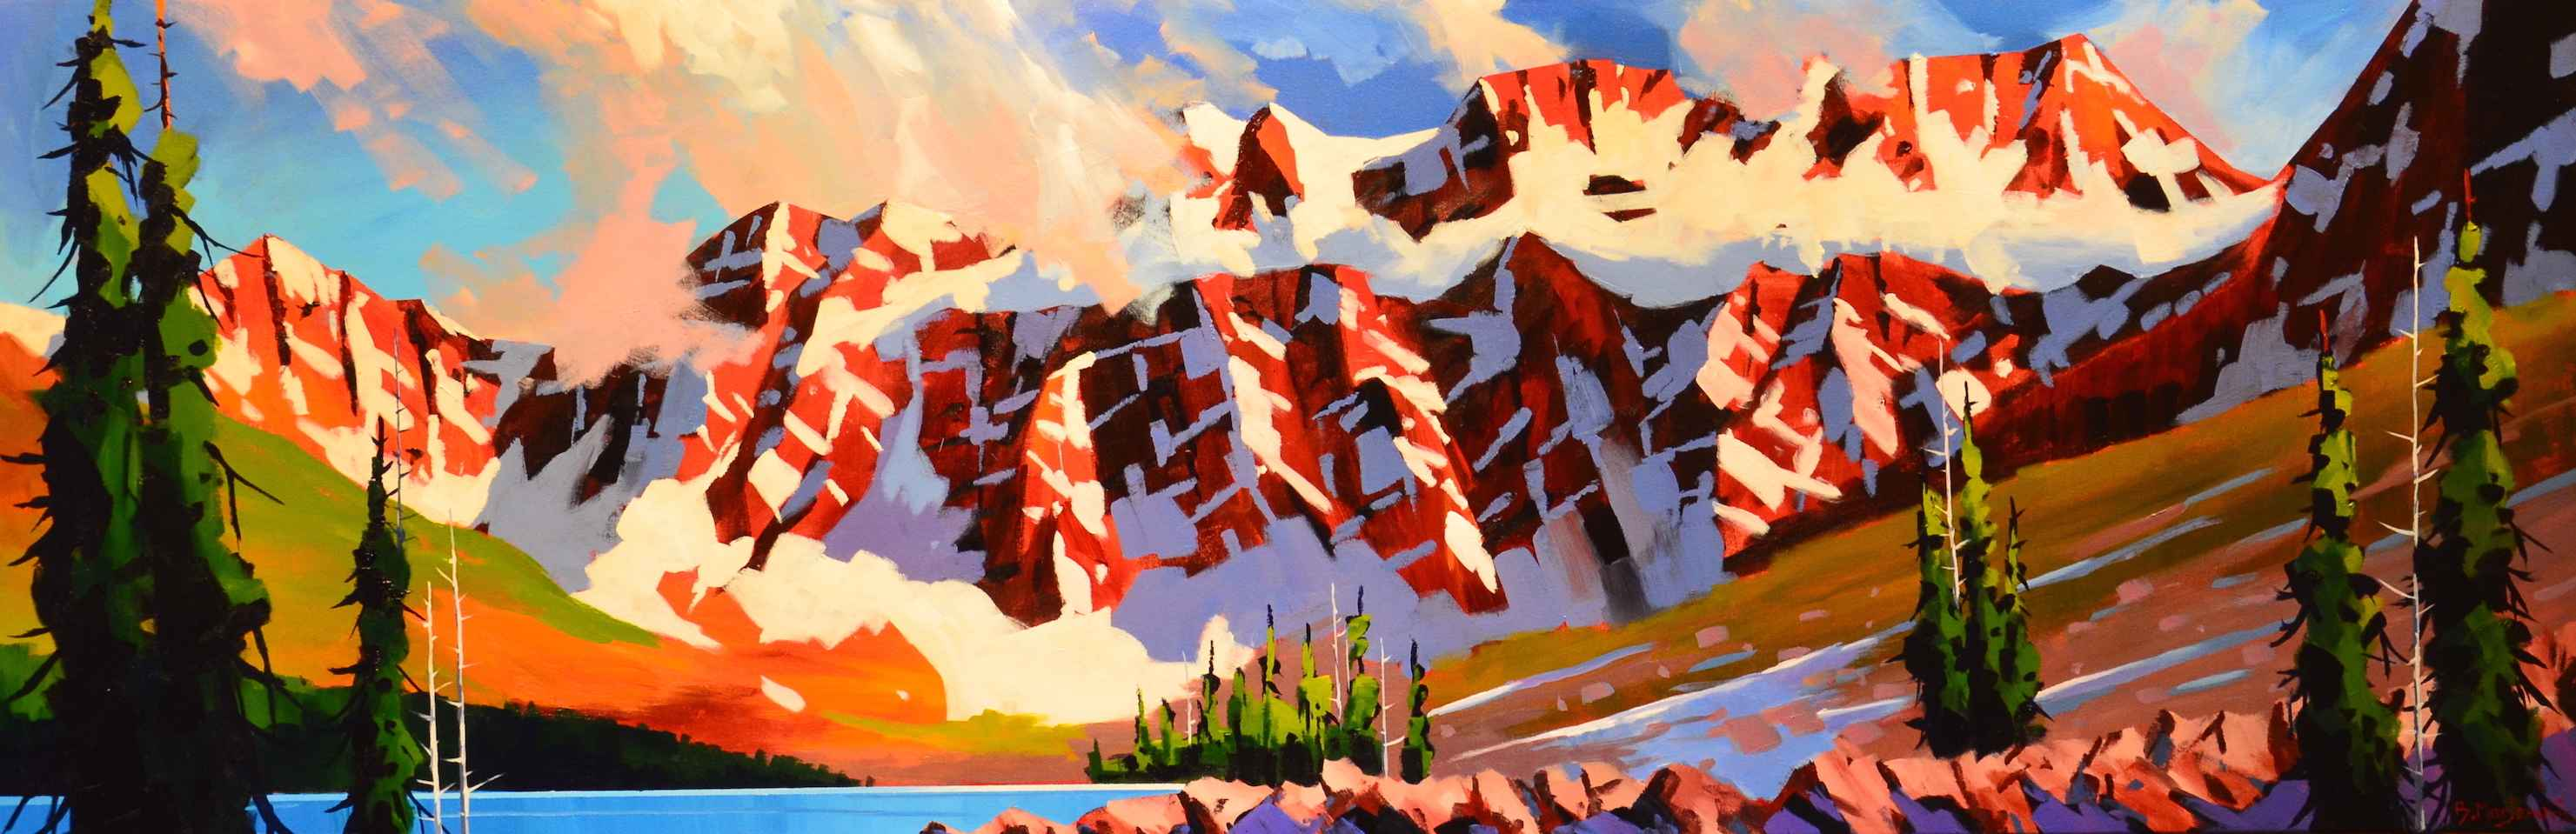 Moving Clouds At Cons... by  Branko Marjanovic - Masterpiece Online